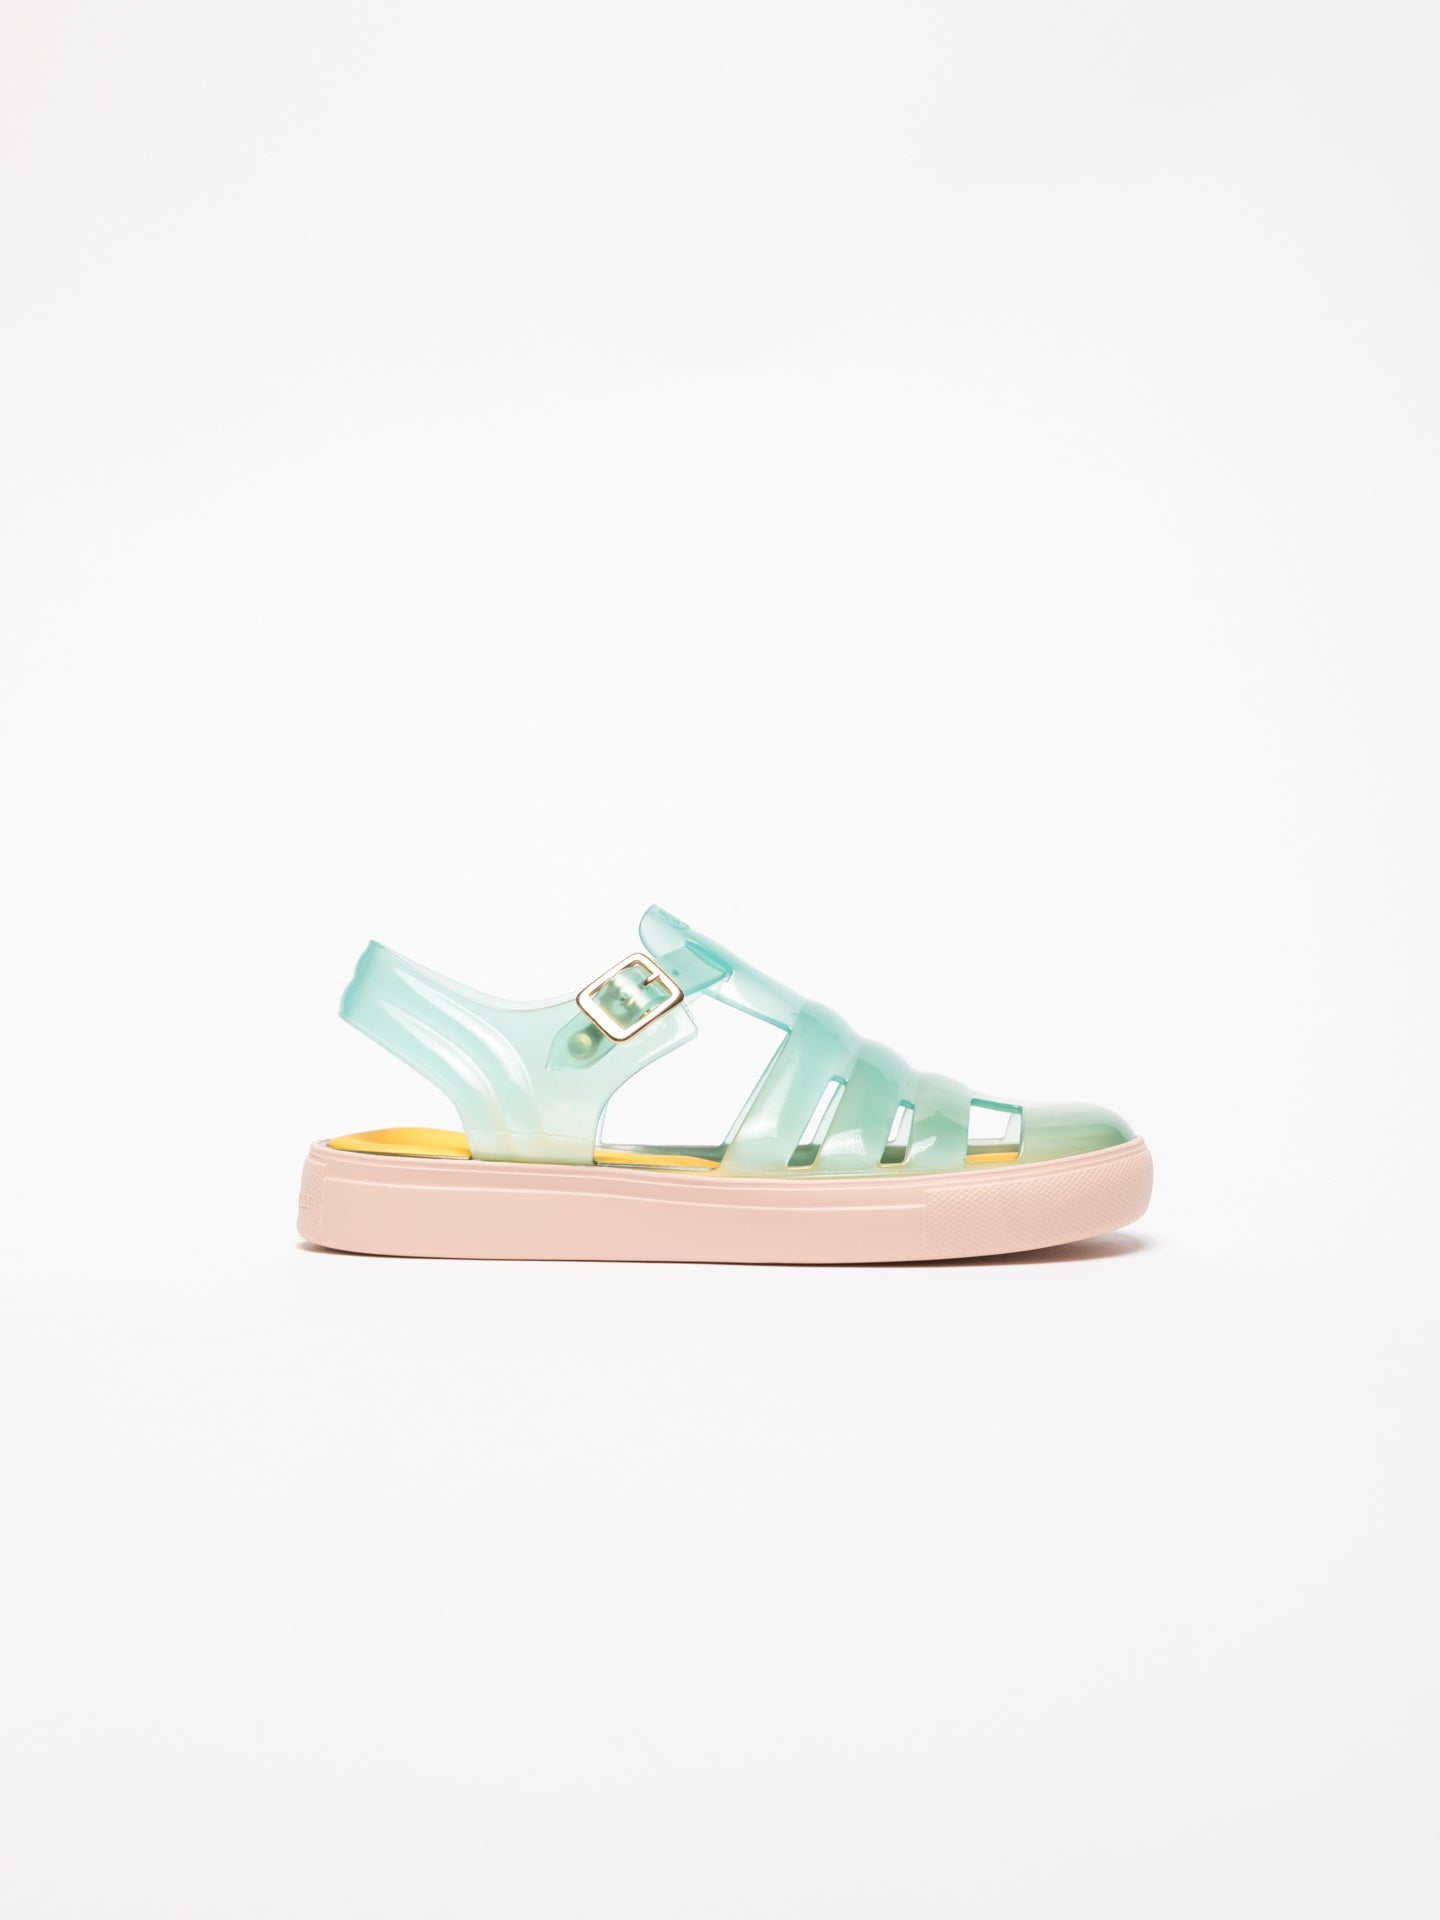 Lemon Jelly Sandalen mit Schnalle in Aquamarinblau